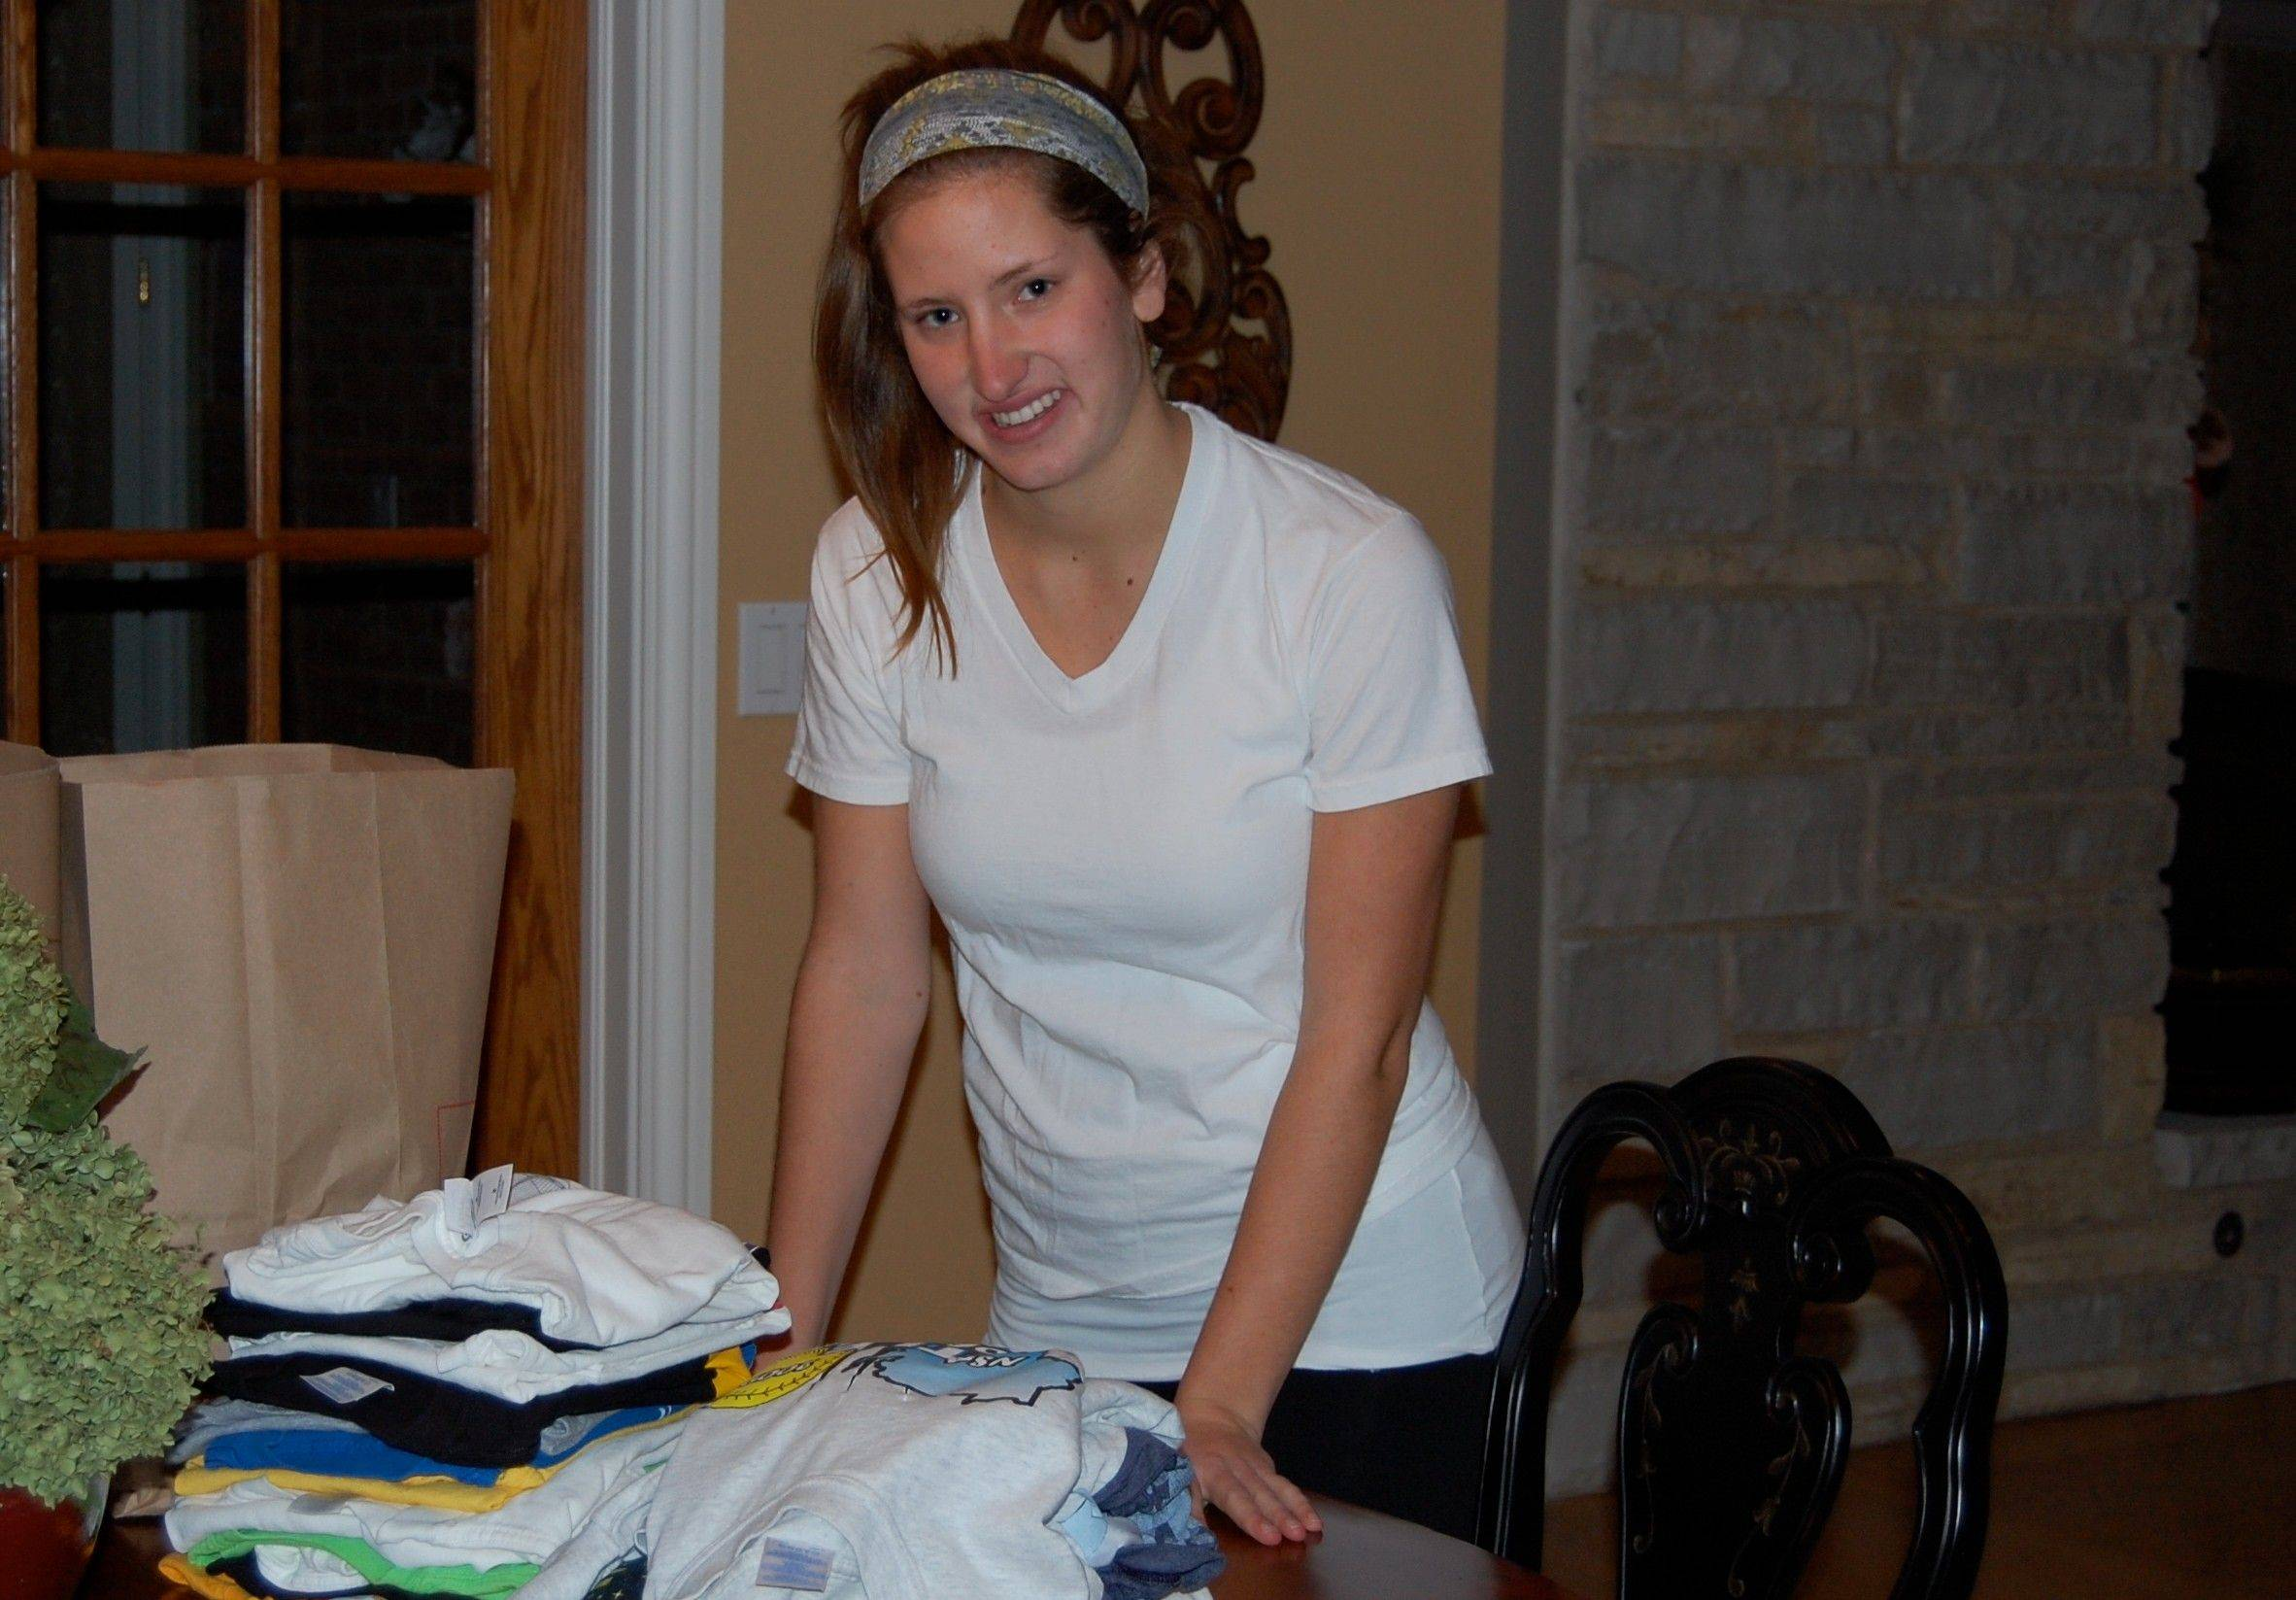 Kayla Mueller folds T-shirts for a National Honor Society service project to benefit children in need in Jamaica and Colombia.